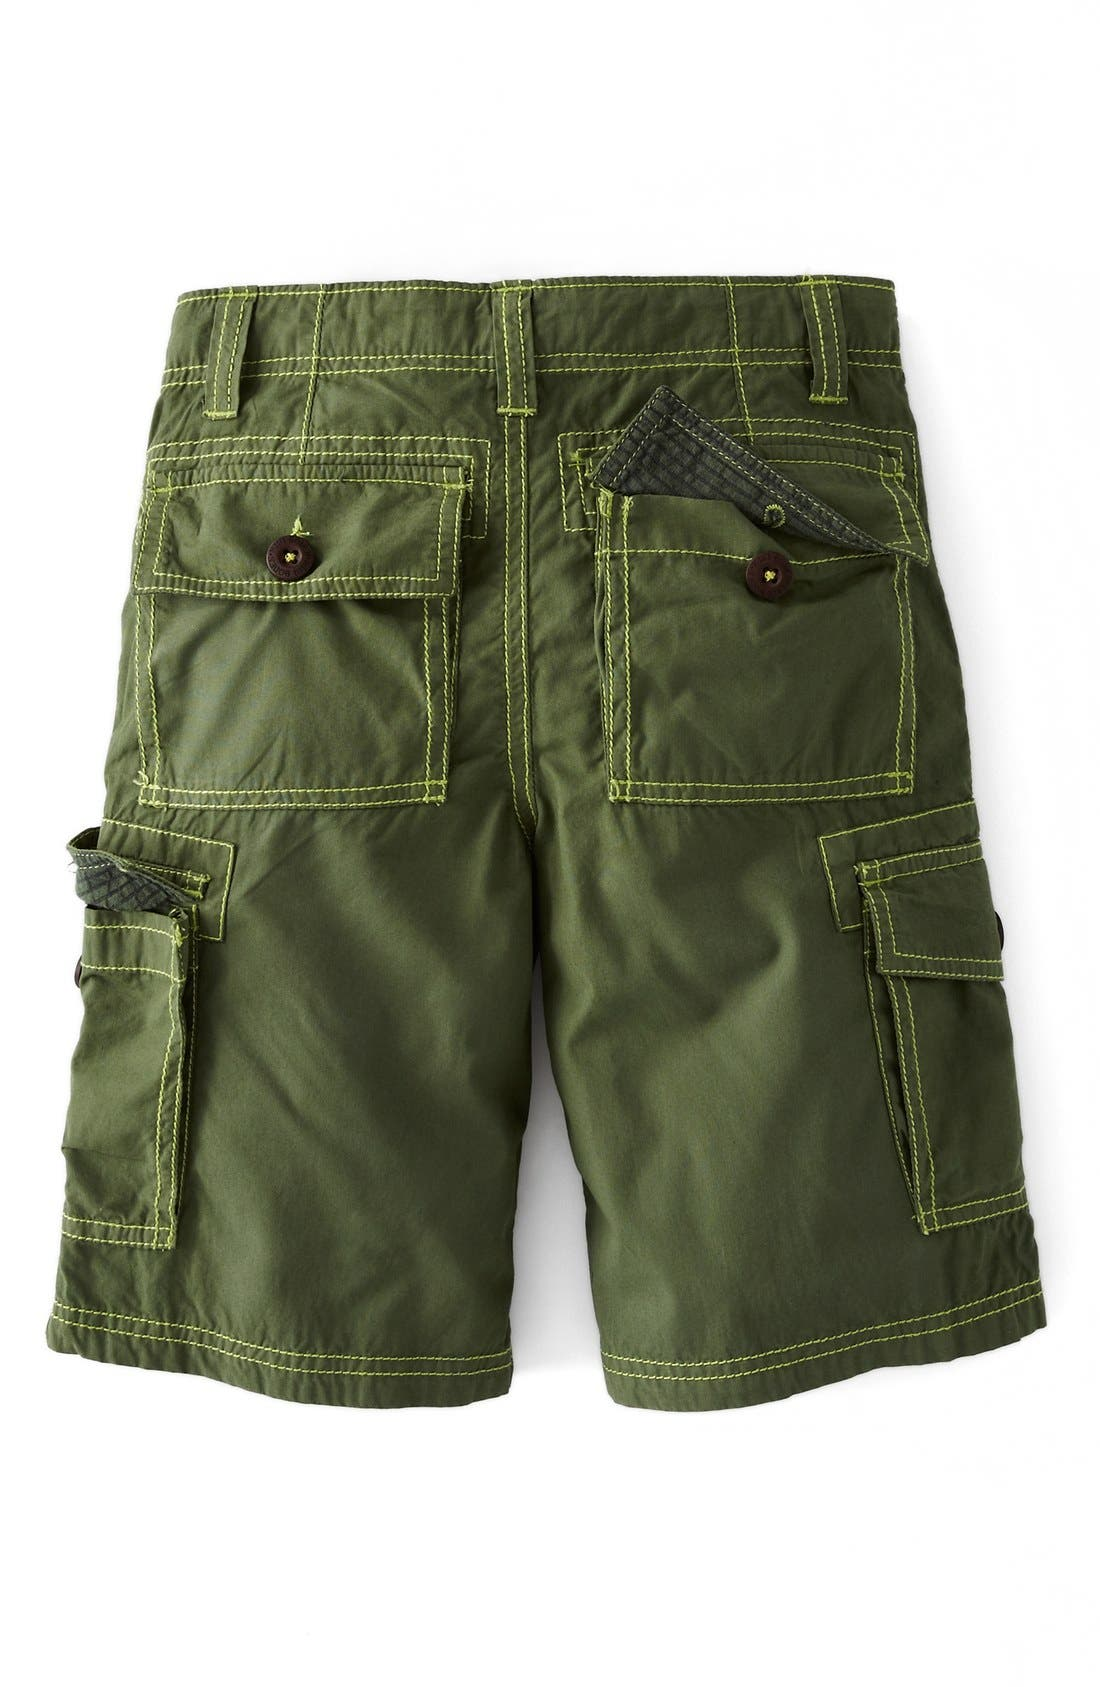 Alternate Image 2  - Mini Boden 'Summer' Cargo Shorts (Toddlers, Little Boys & Big Boys)